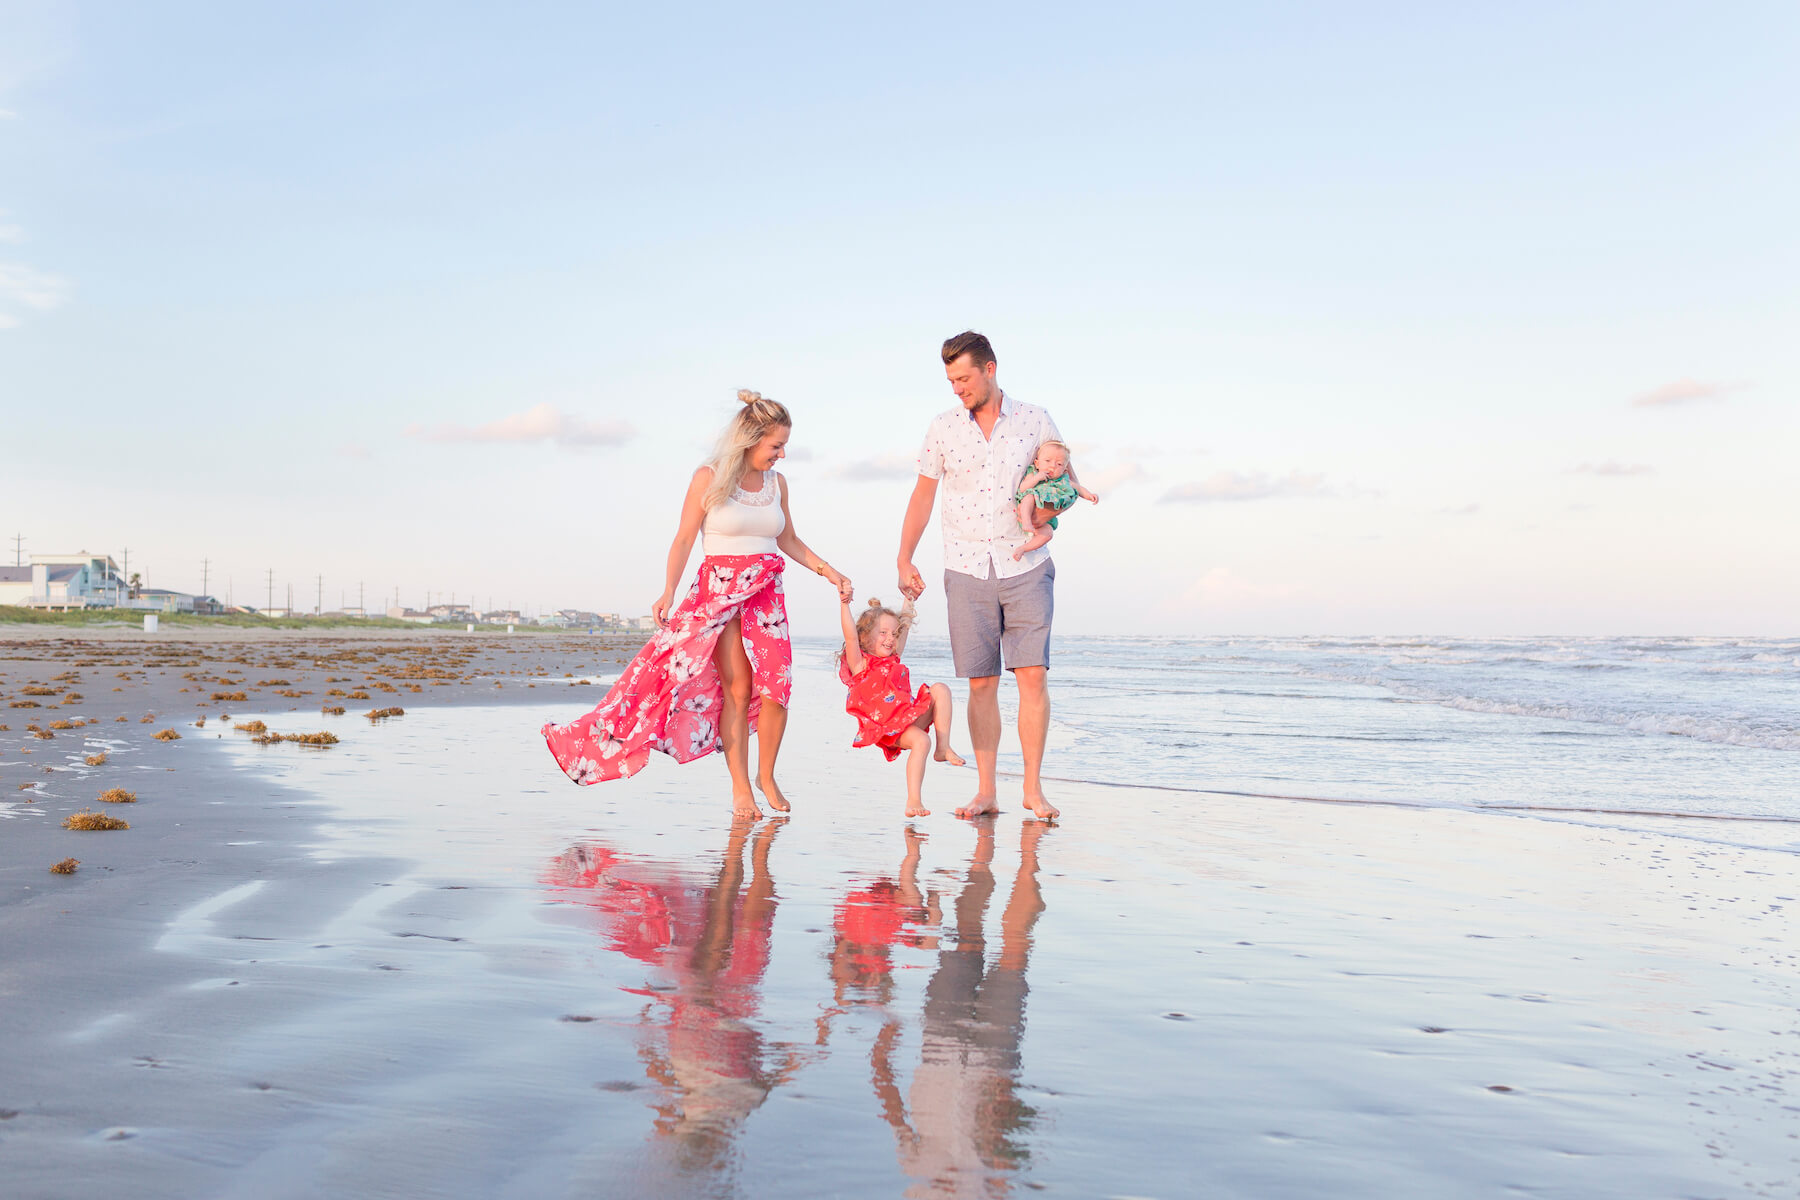 20 Tips to Have the Best Beach Photoshoot   Flytographer